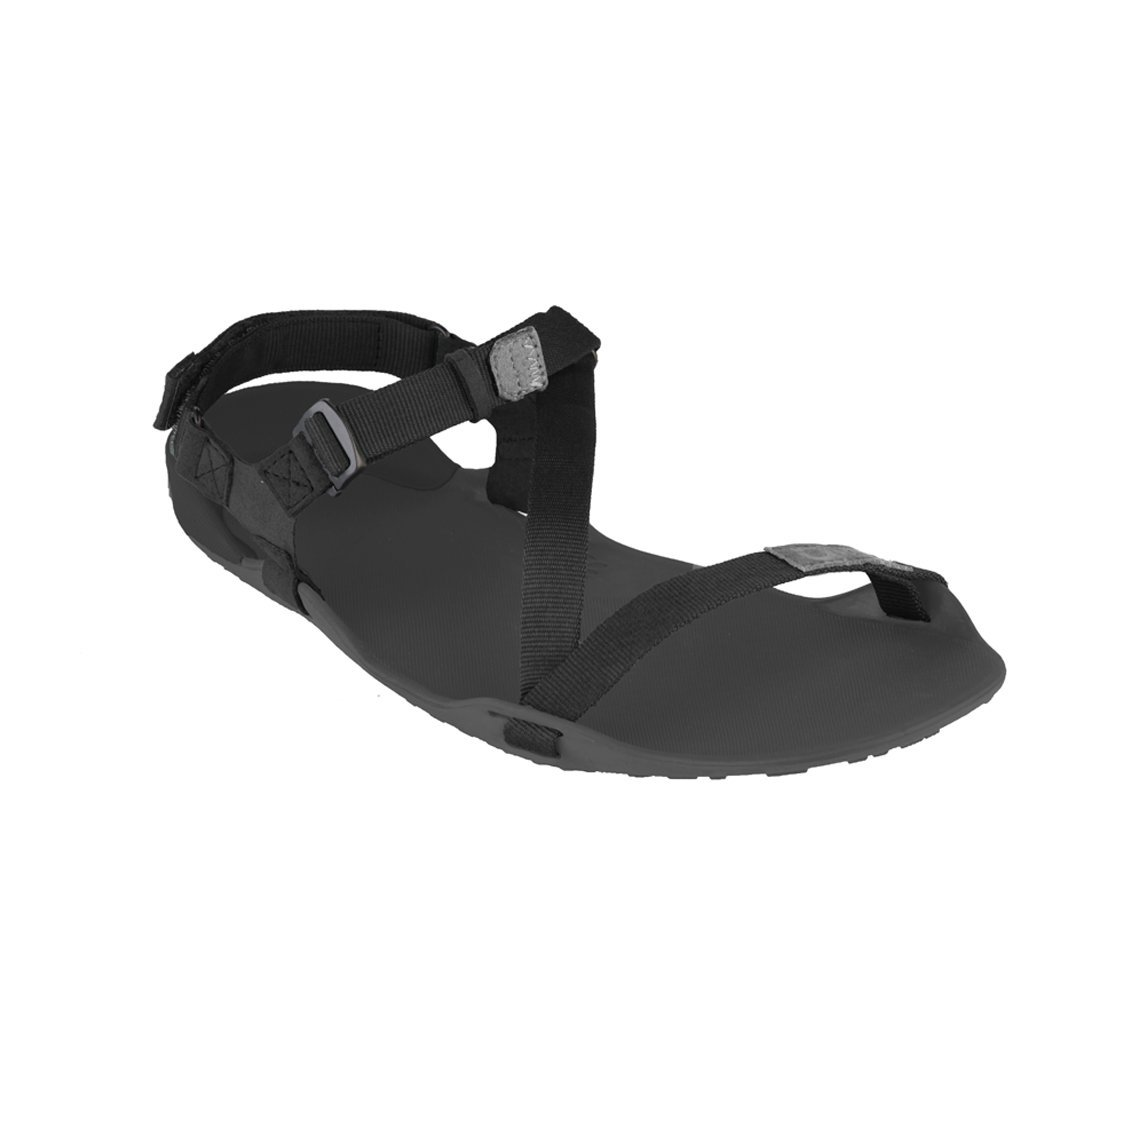 Xero Shoes Barefoot-Inspired Sport Sandals - Z-Trek - Women B01D22YPZ8 7 B(M) US|Charcoal/Coal Black